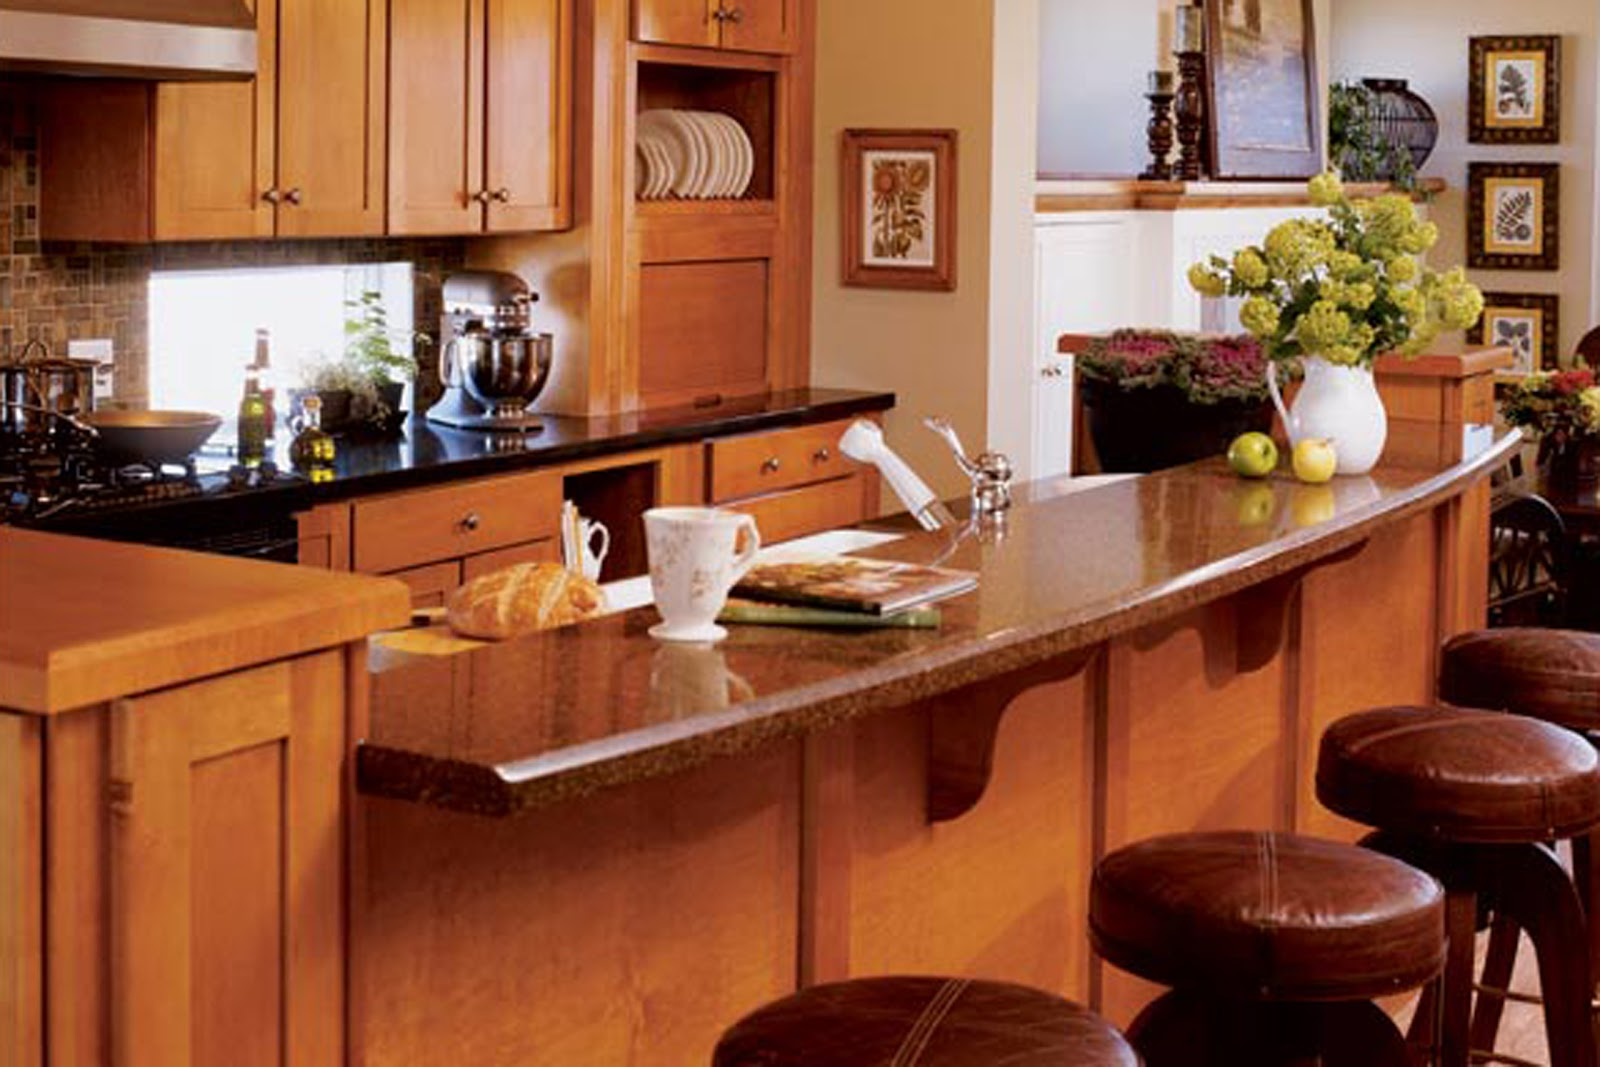 Elegant Home Designs Blog: Home Design Ideas  3 Tier Kitchen Island